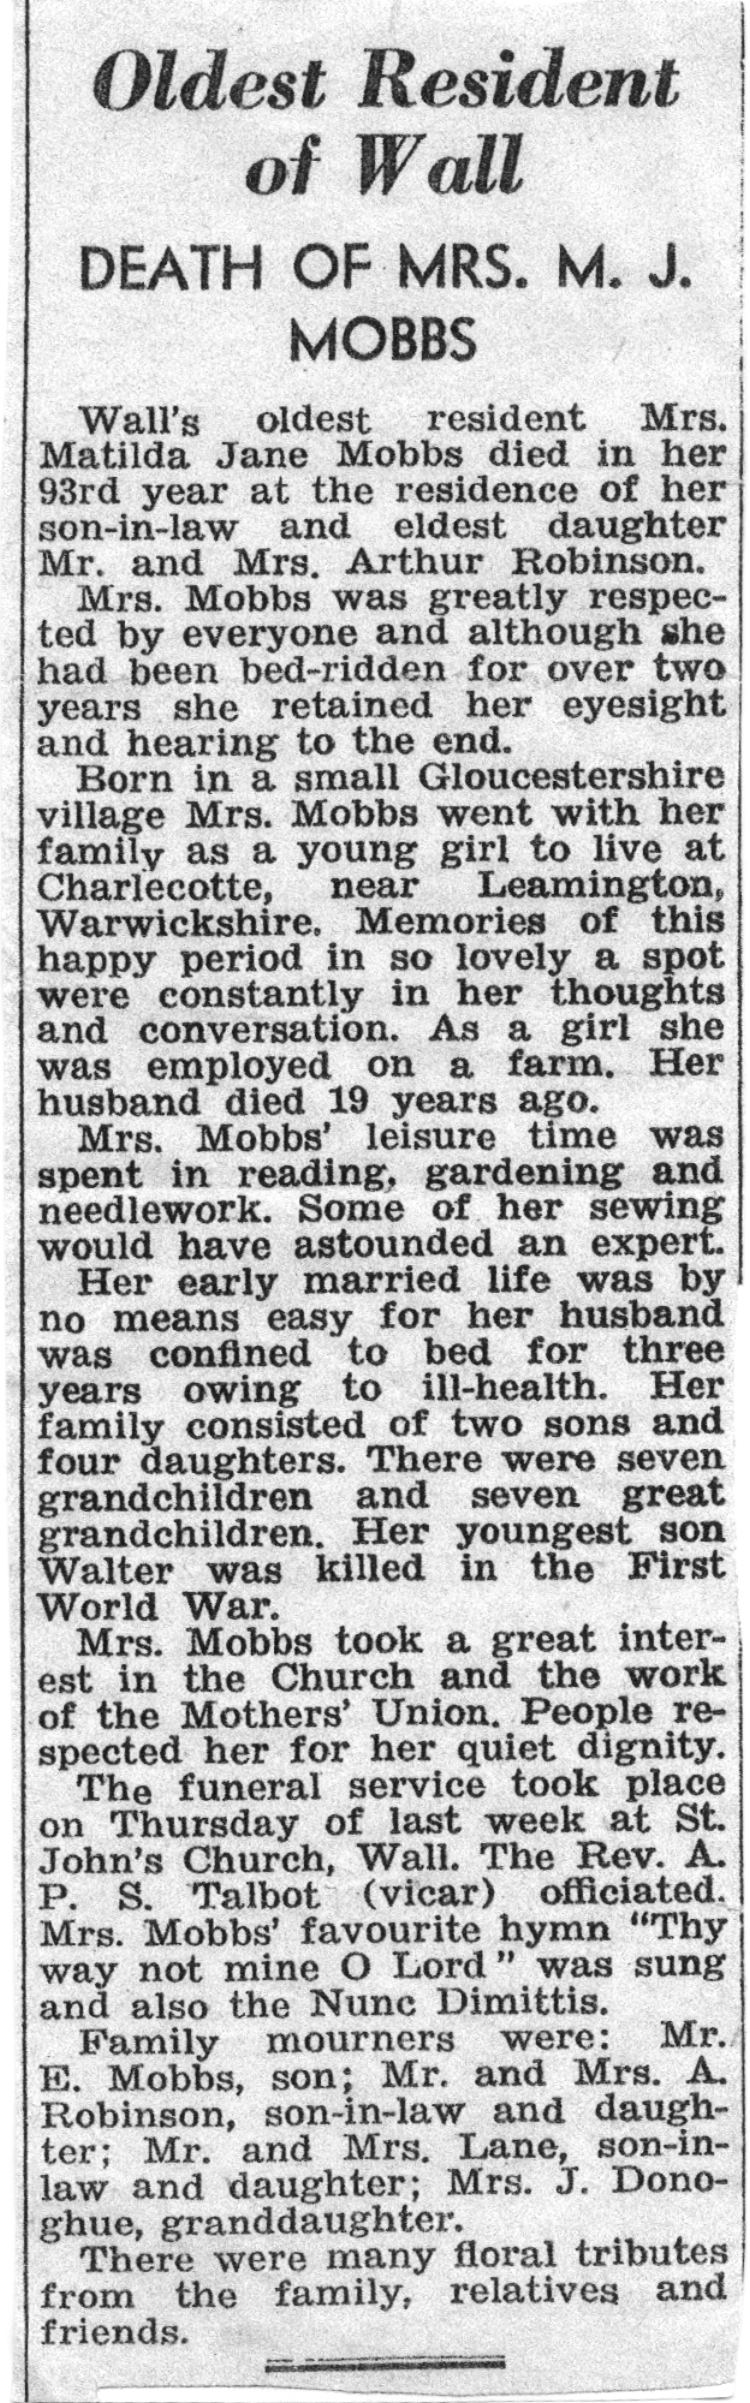 Newspaper clipping from the Lichfield Mercury about the life and death of Walter's mother